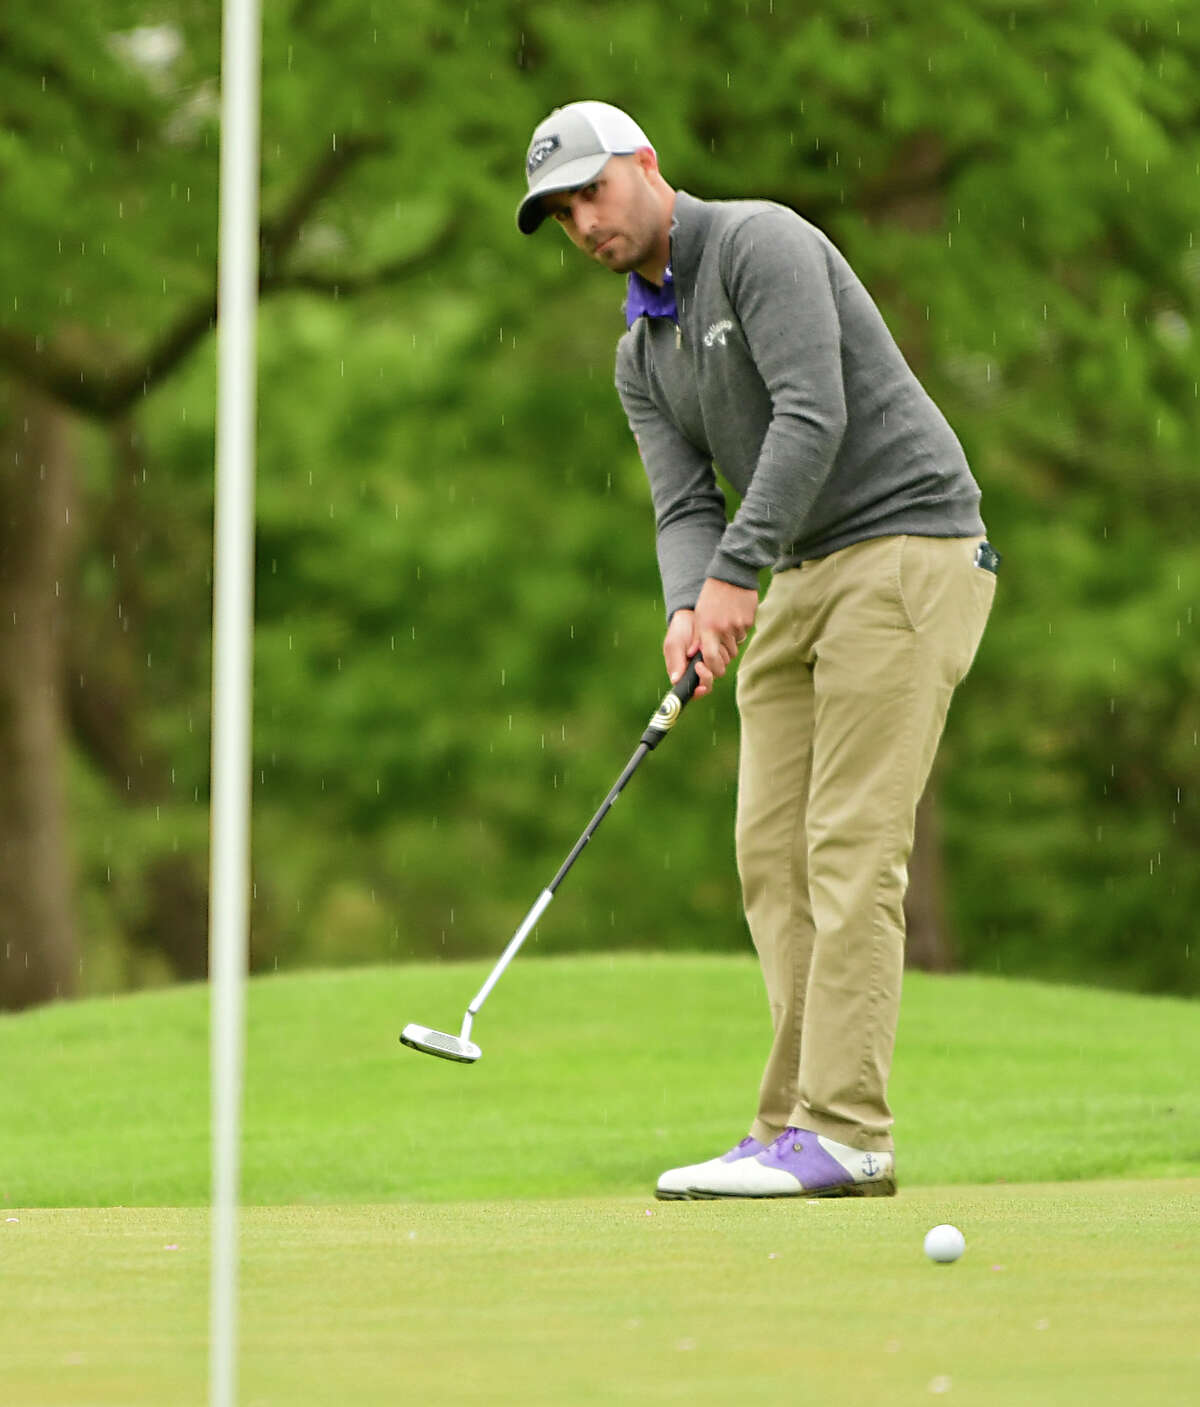 Justin Hearley of Albany watches his putt on the 18th green during the U.S. Open local qualifier at Country Club of Troy on Monday, May 13, 2019 in Troy, N.Y. (Lori Van Buren/Times Union)